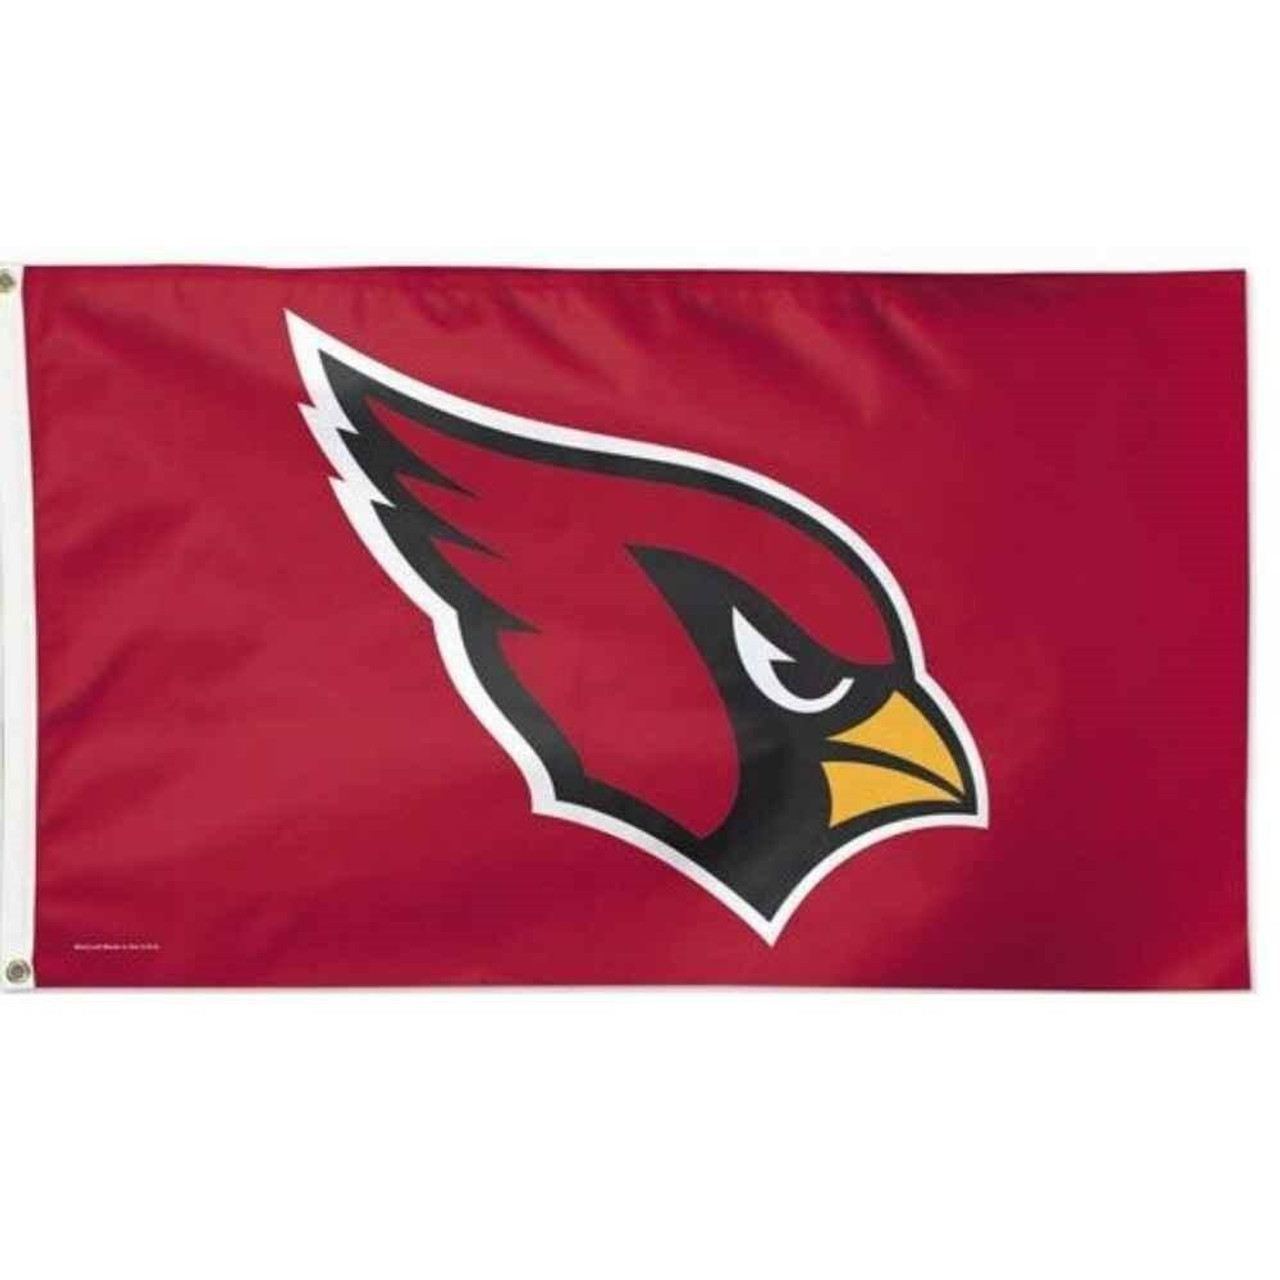 The Arizona Cardinals flag has a red background with a red cardinal head outlined in white.